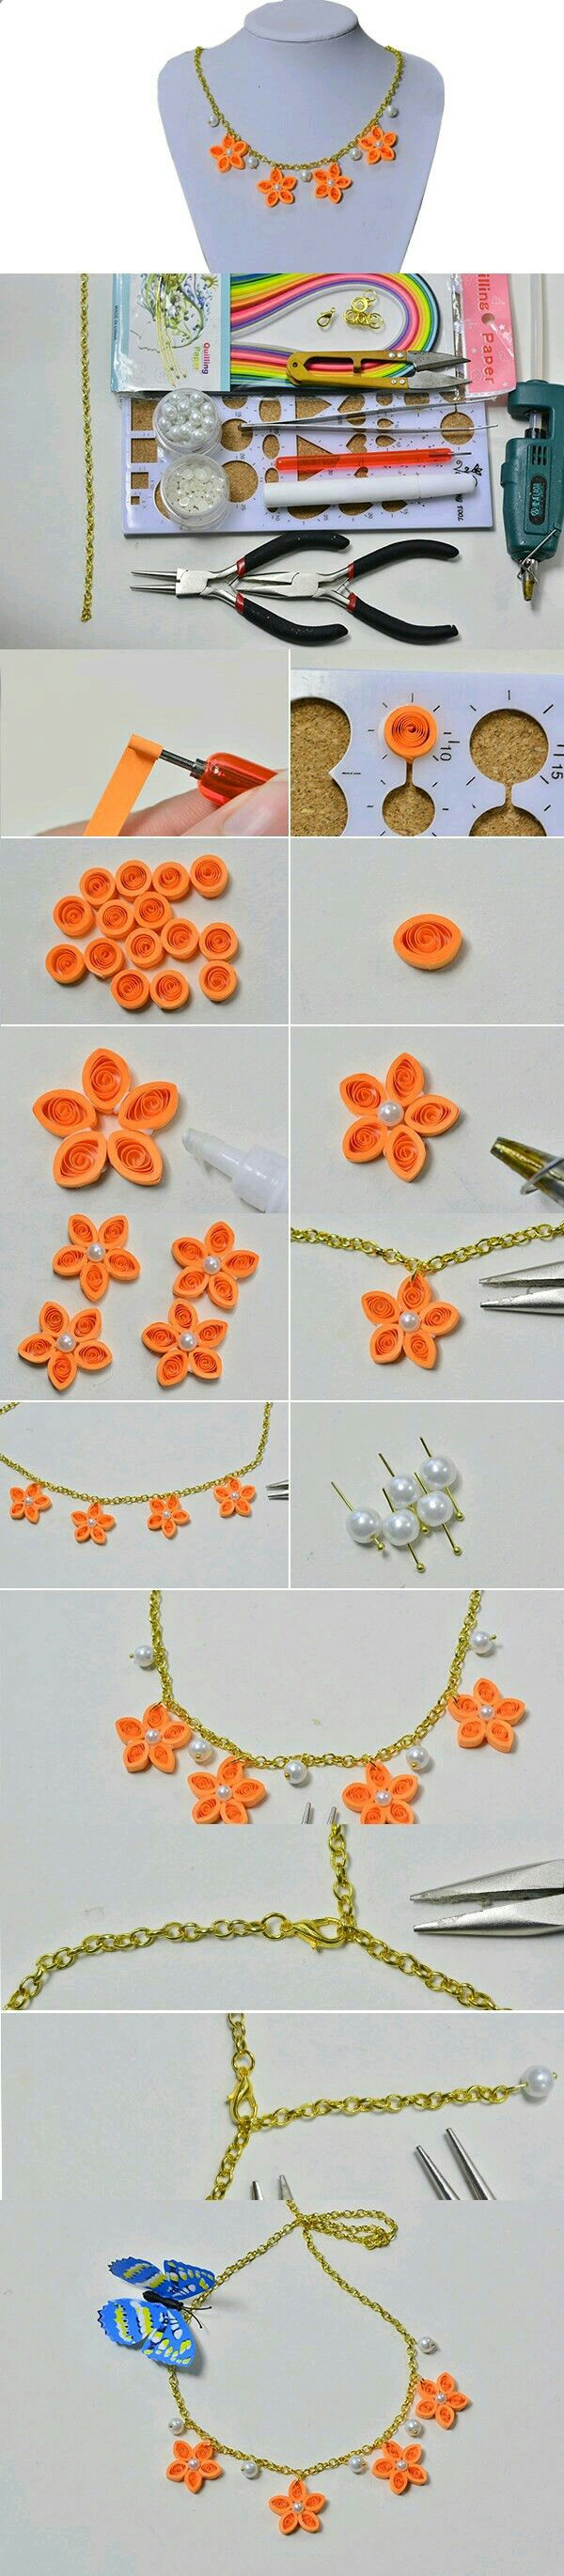 Pin by claus piza on filigrana pinterest quilling paper